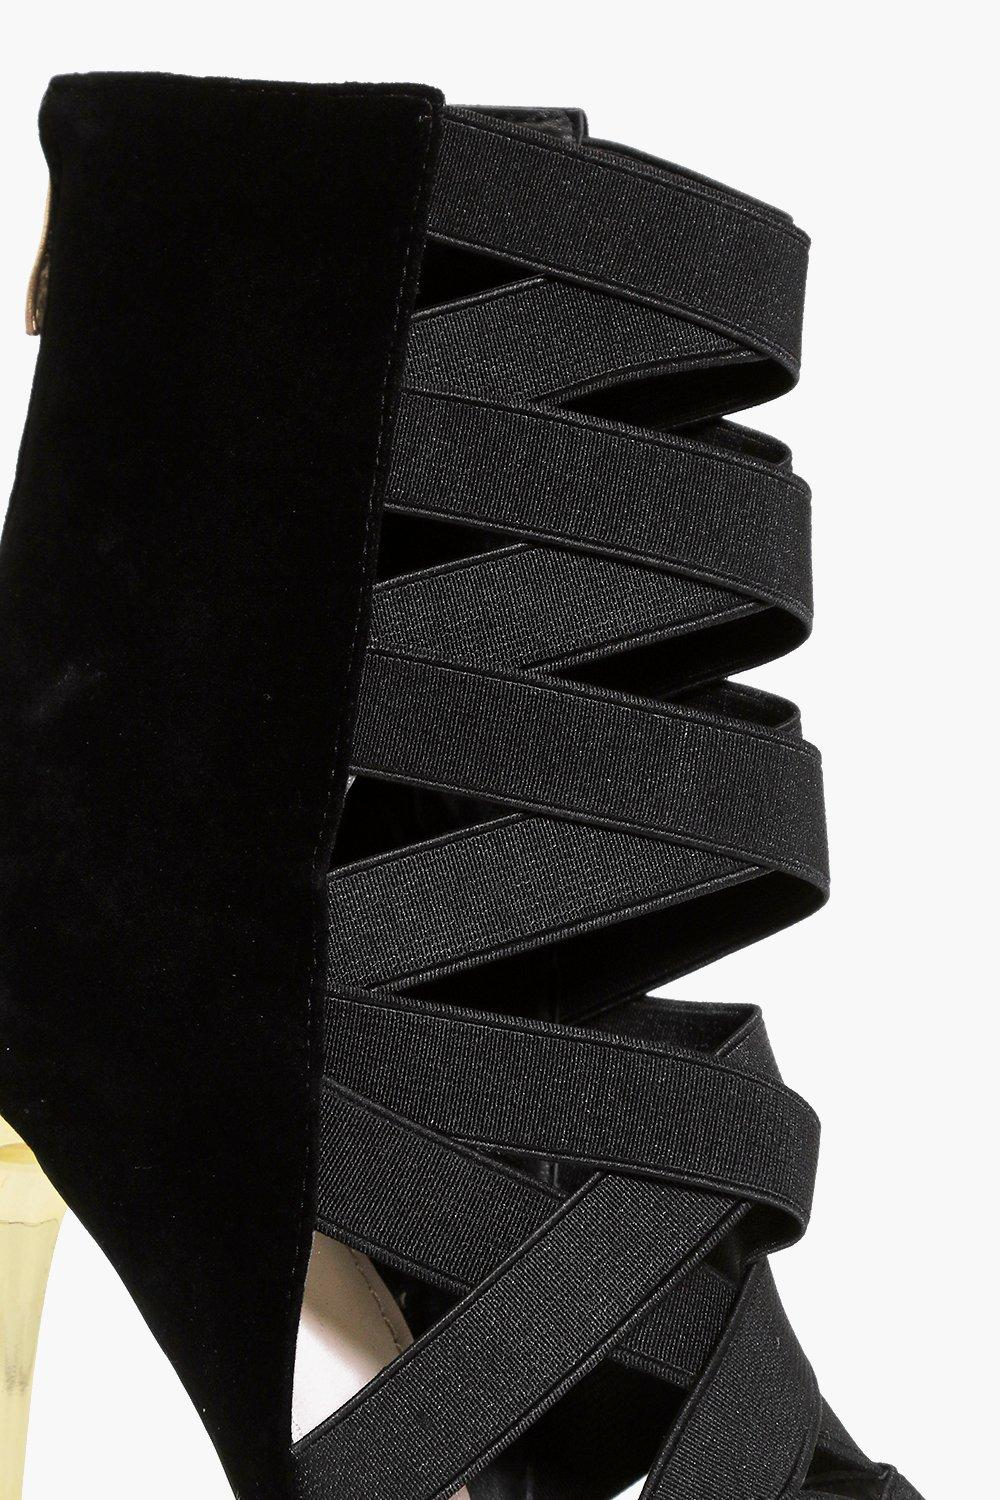 Boohoo Synthetic Lois Elastic Multi Strap Shoe Boot in Black